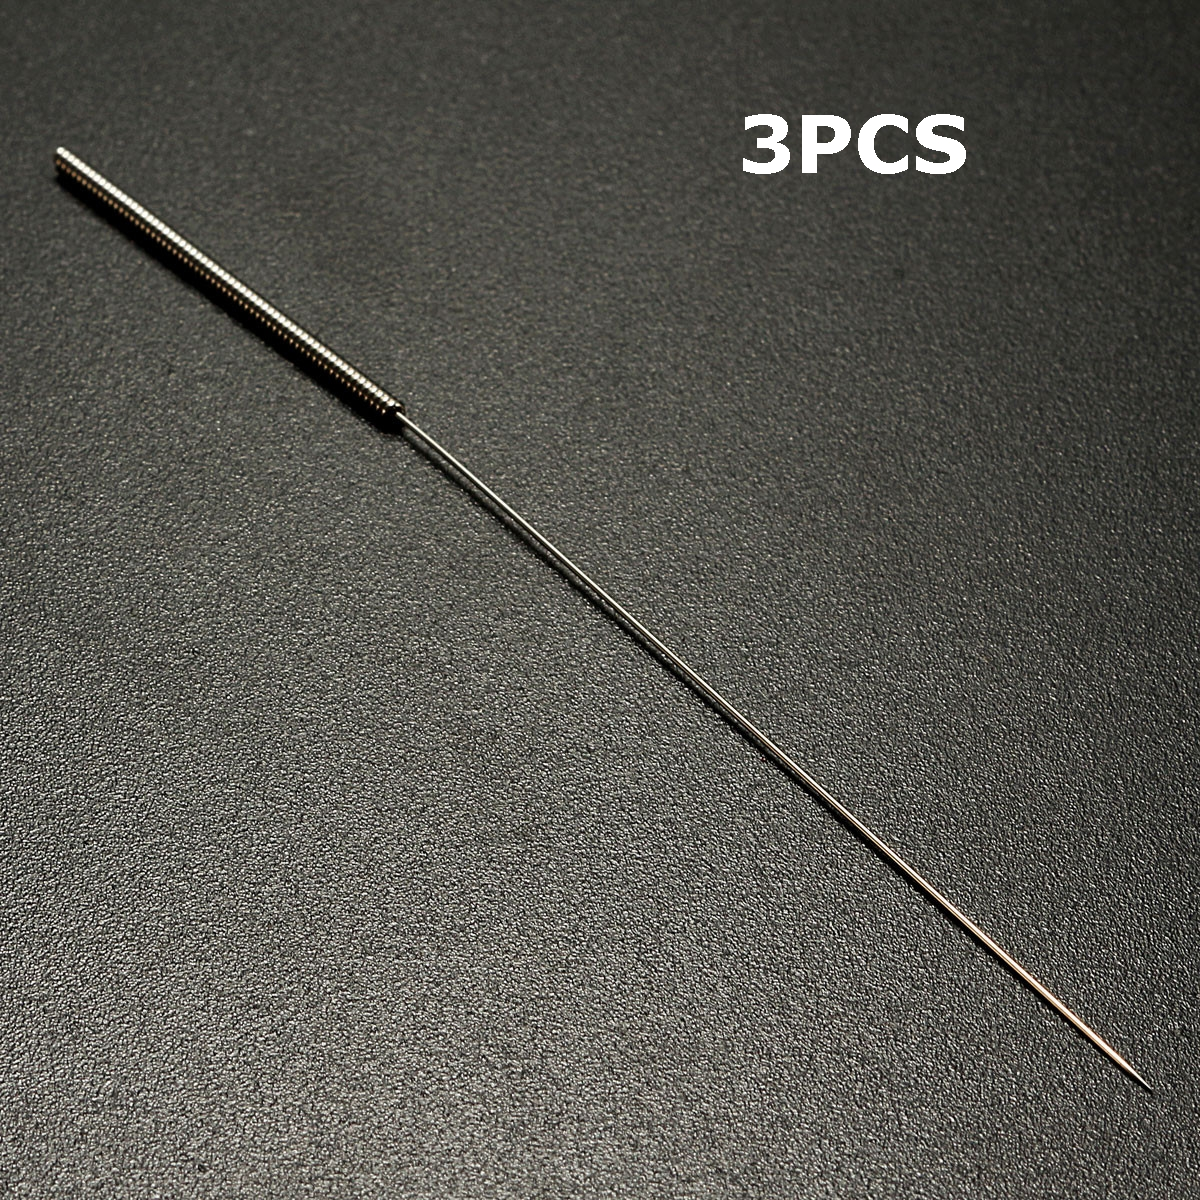 3PCS 3D Printer Nozzle Cleaning Tool Drill Bit 0.4mm Size For Extruder RepRap